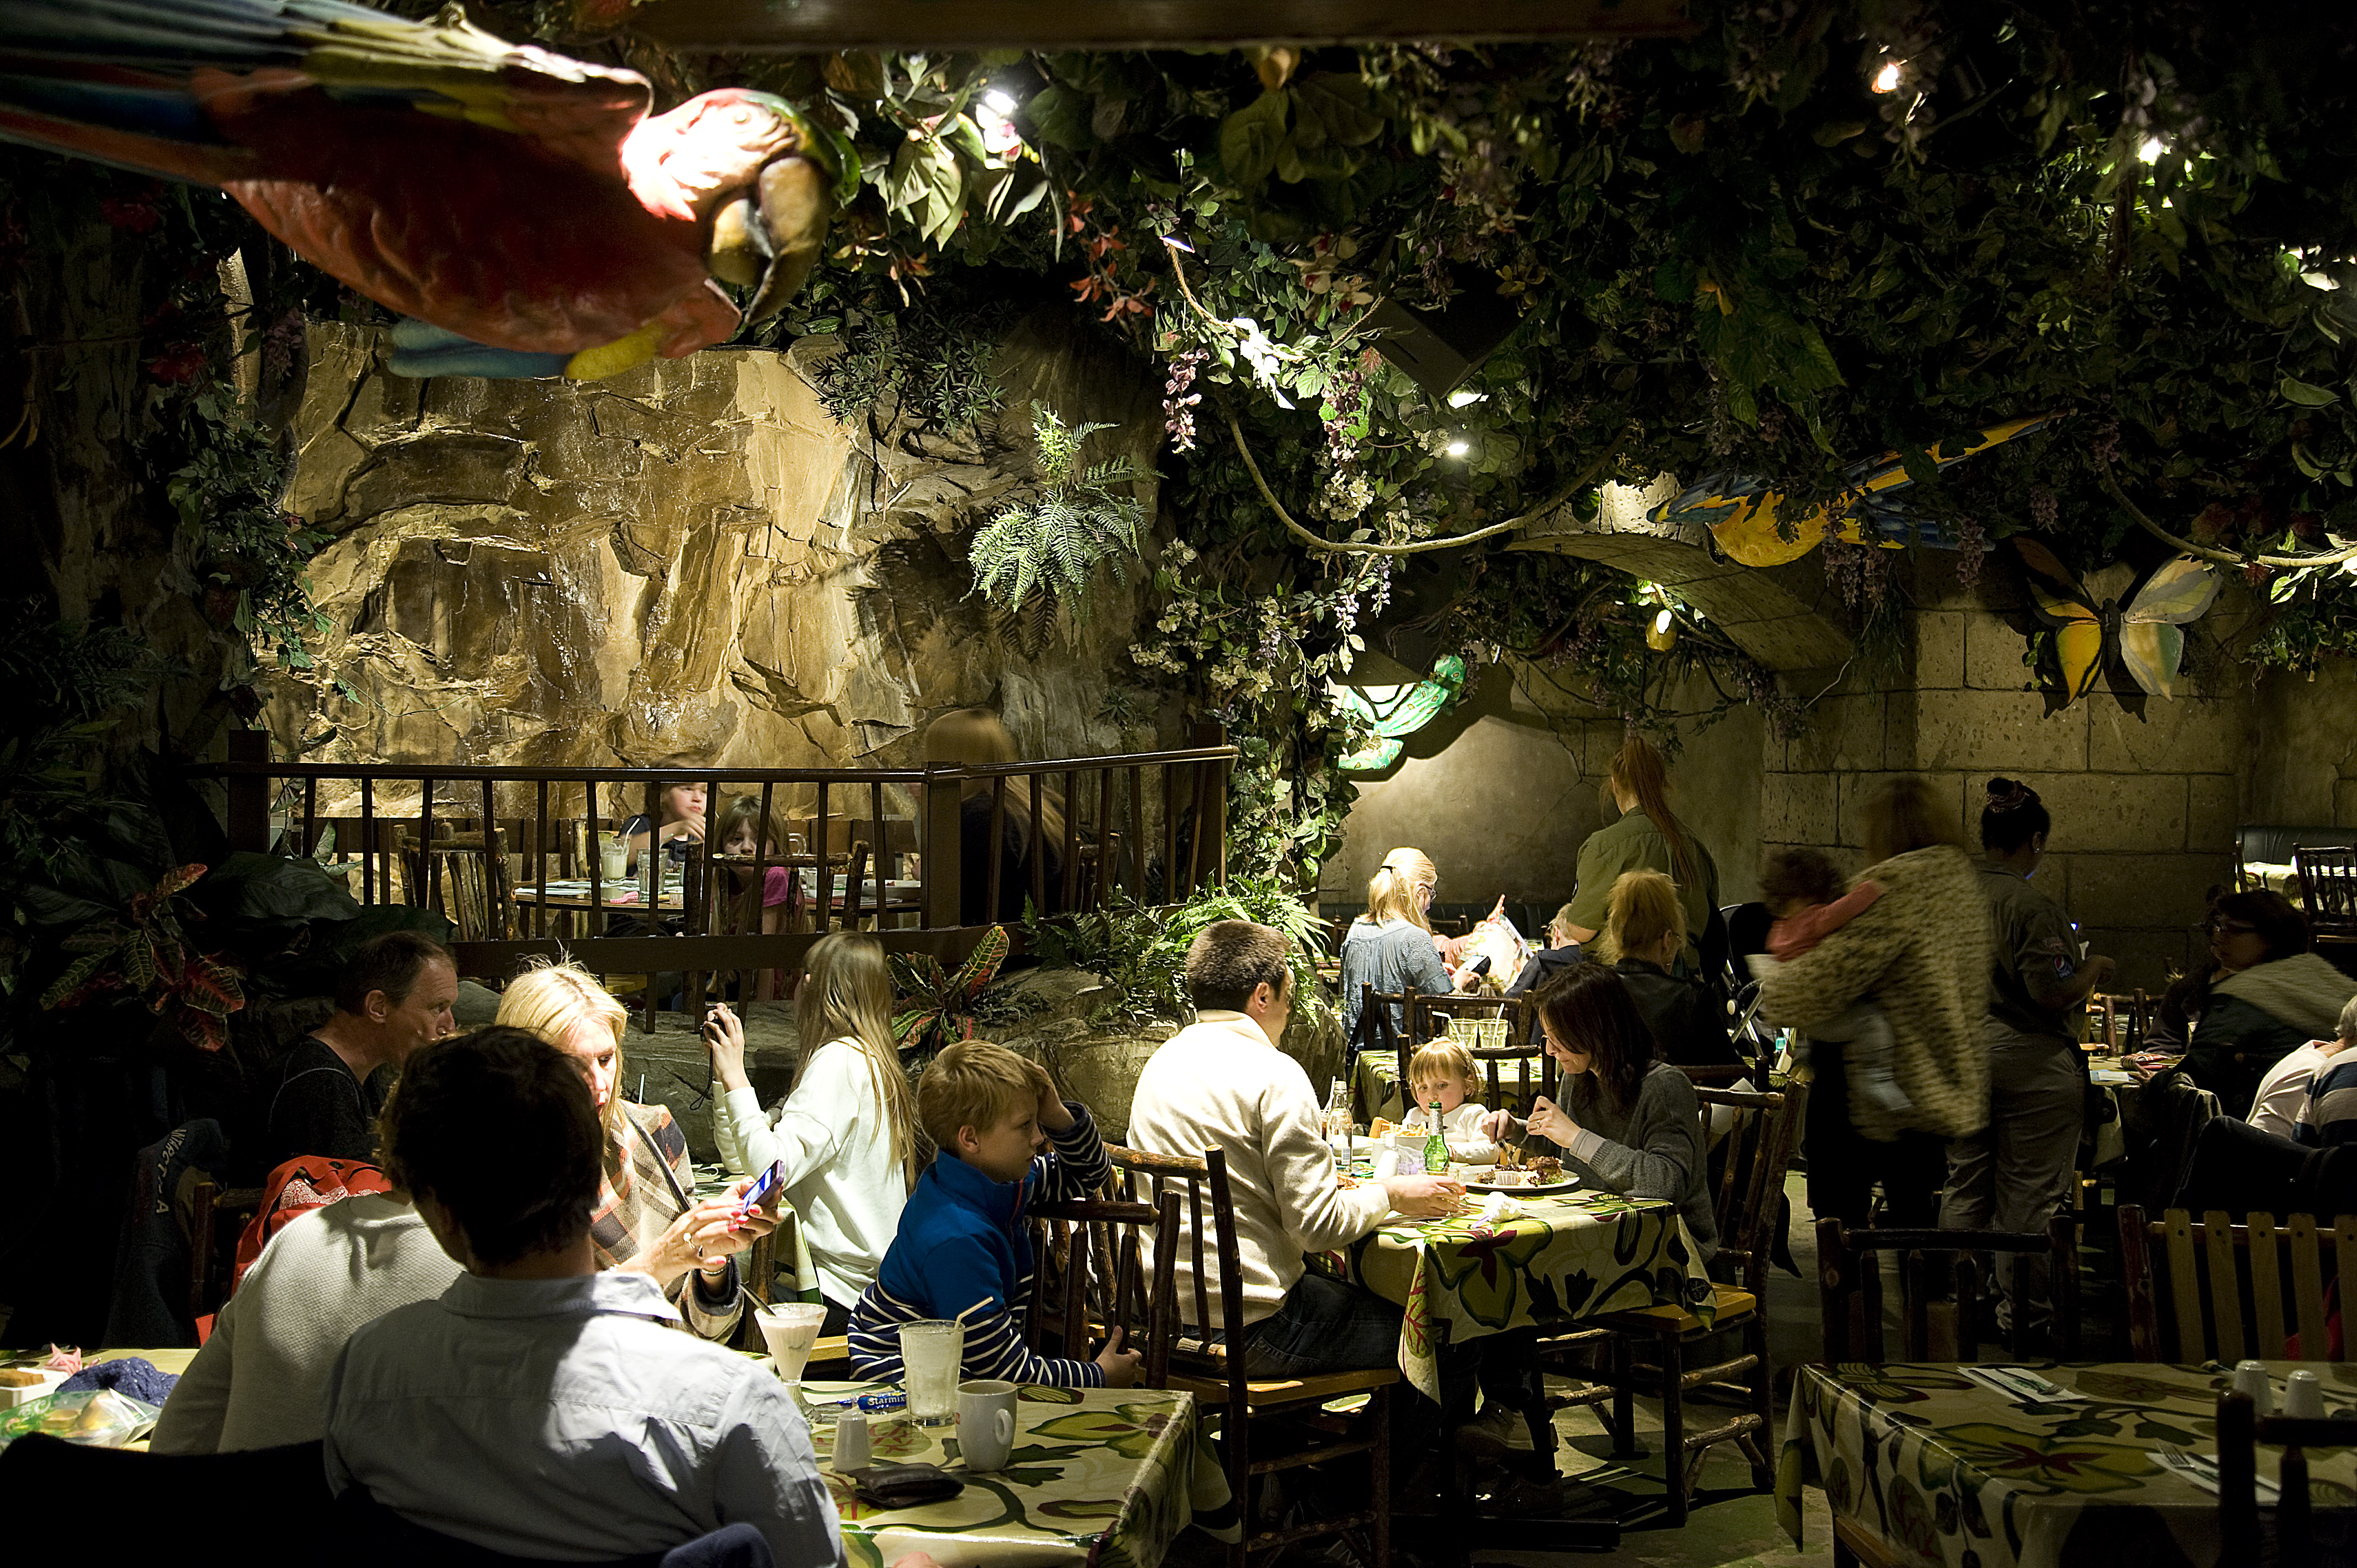 a corporate report on rainforest cafe inc Company overview rainforest cafe is a restaurant chain business that is owned and operated by landry's restaurants, inc rainforest cafe was founded by steven schussler with its first restaurant opening in bloomington, minnesota in 1994.